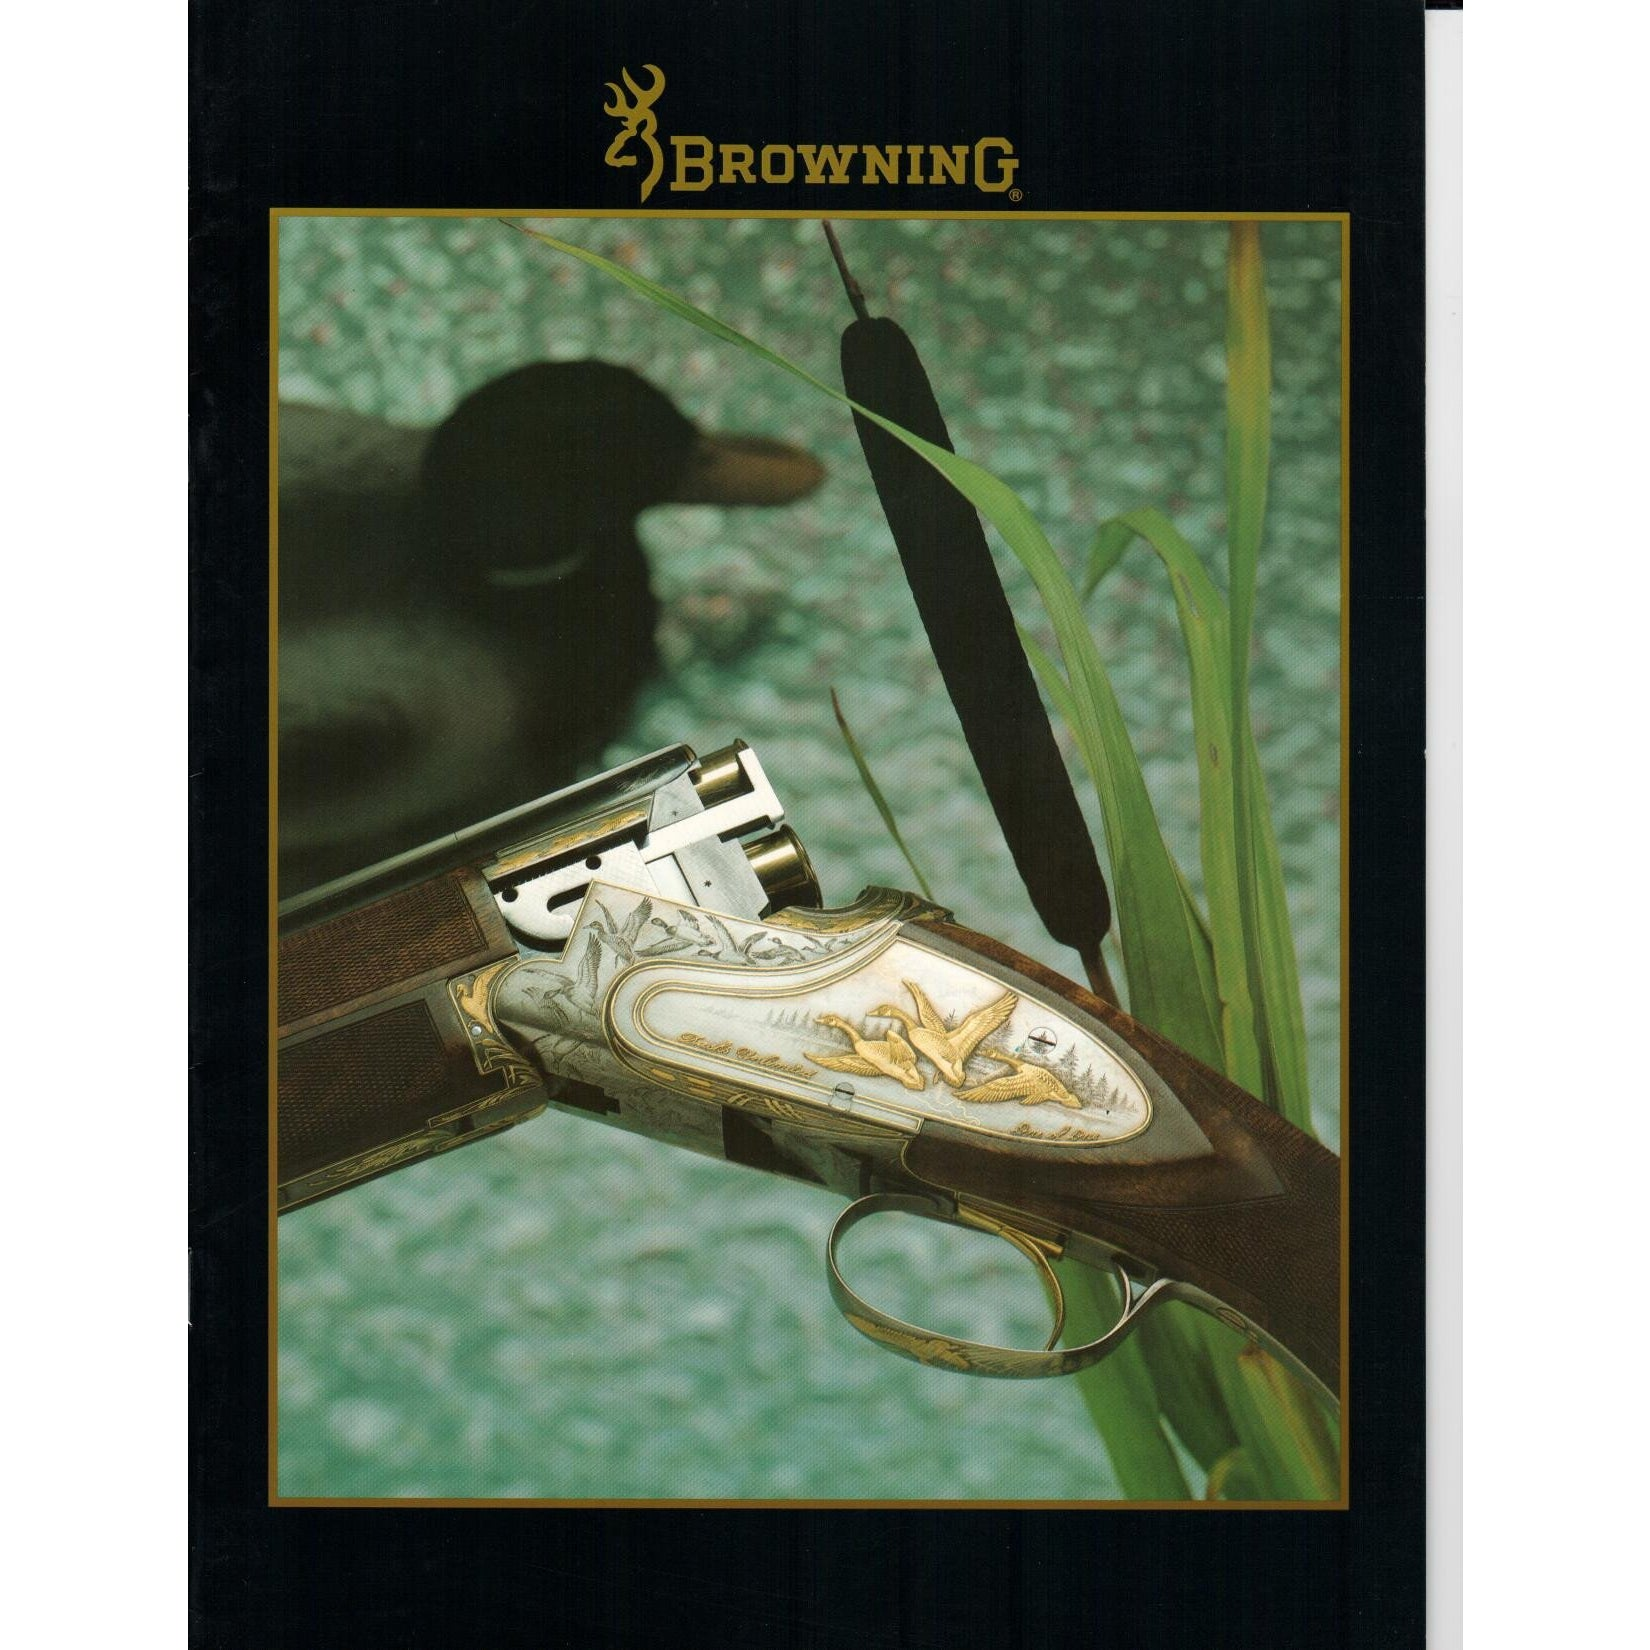 Browning (Copyright Feb. 1989),Catalogues & Brochures- Canada Brass